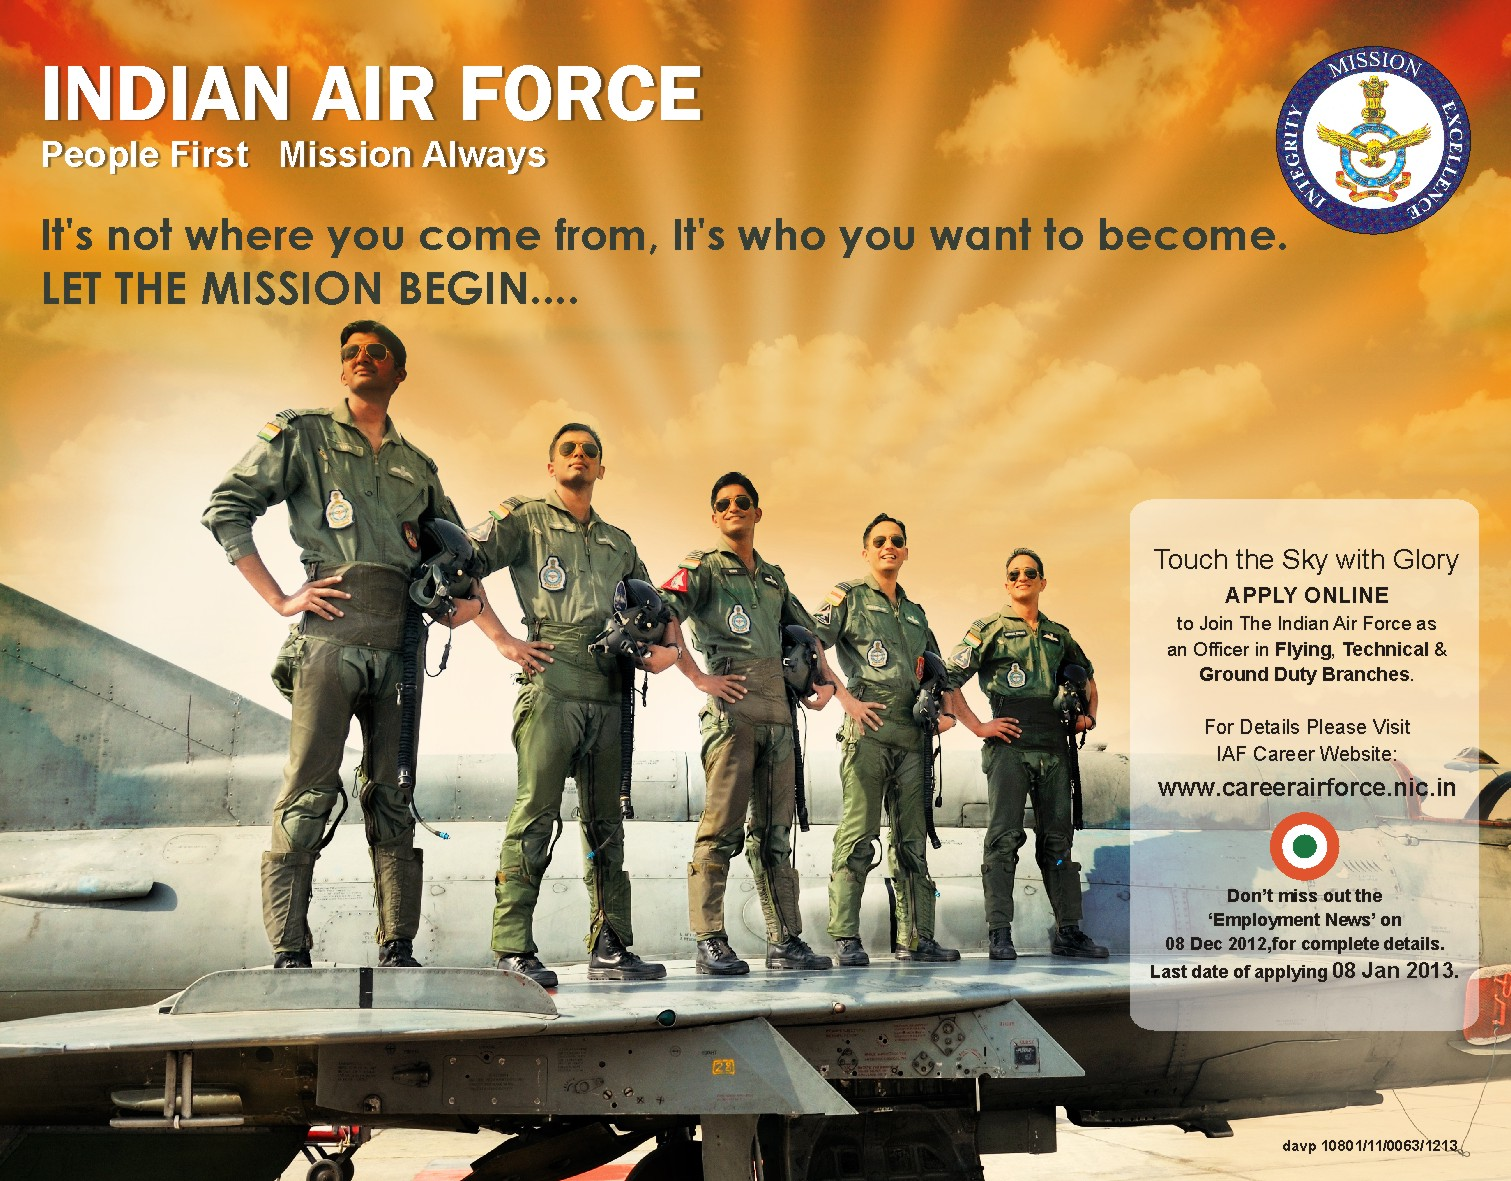 indian air force ads to inspire and give you goose bumps!